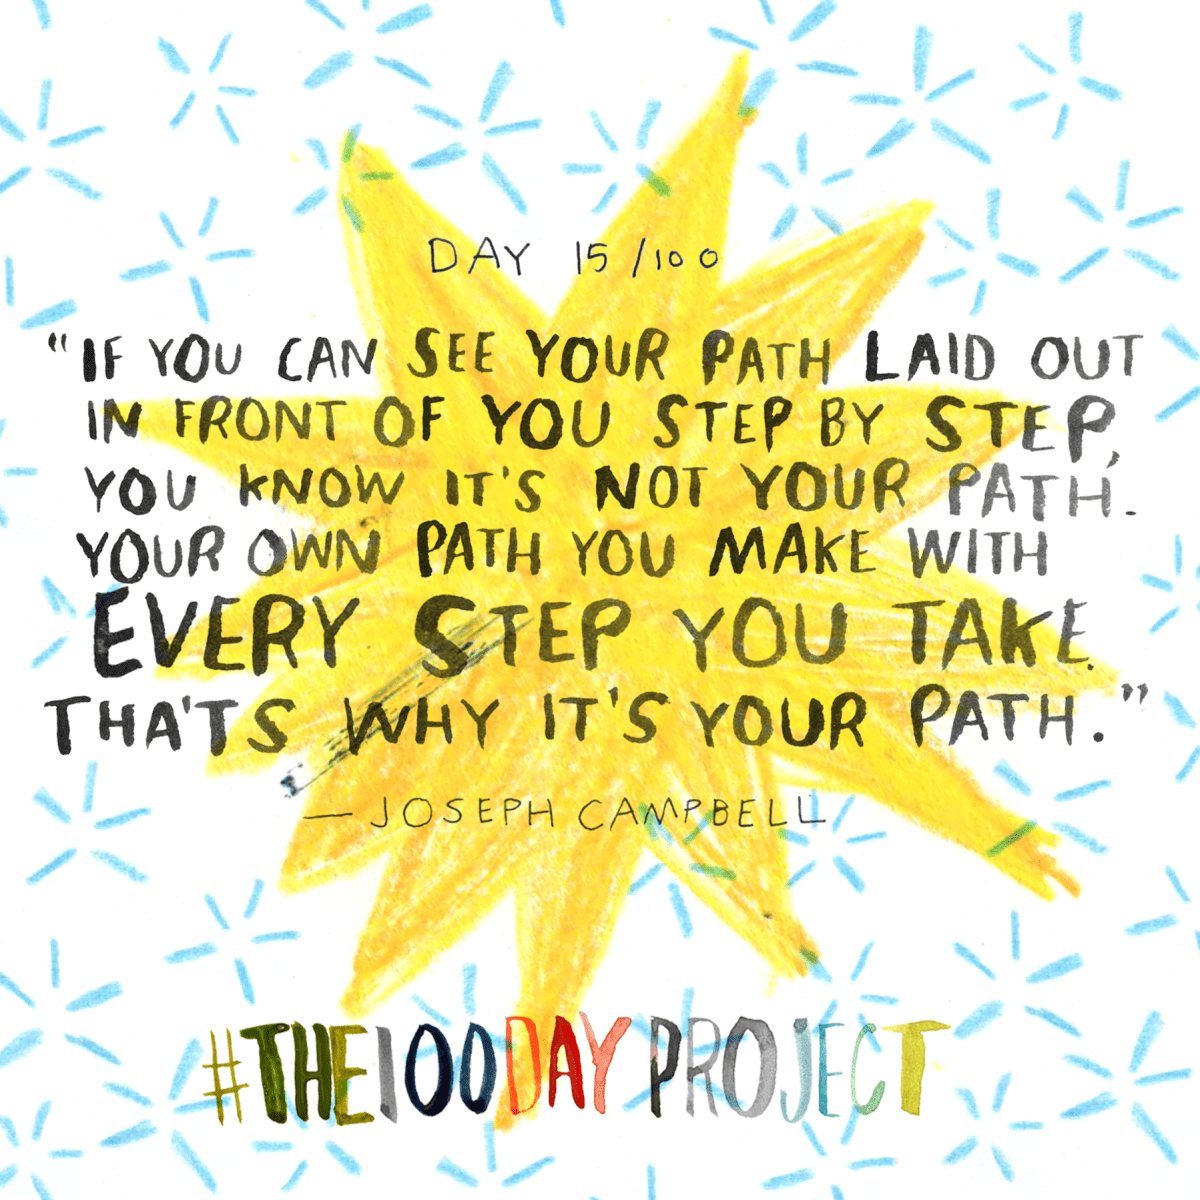 #The100DayProject - Two Week Update